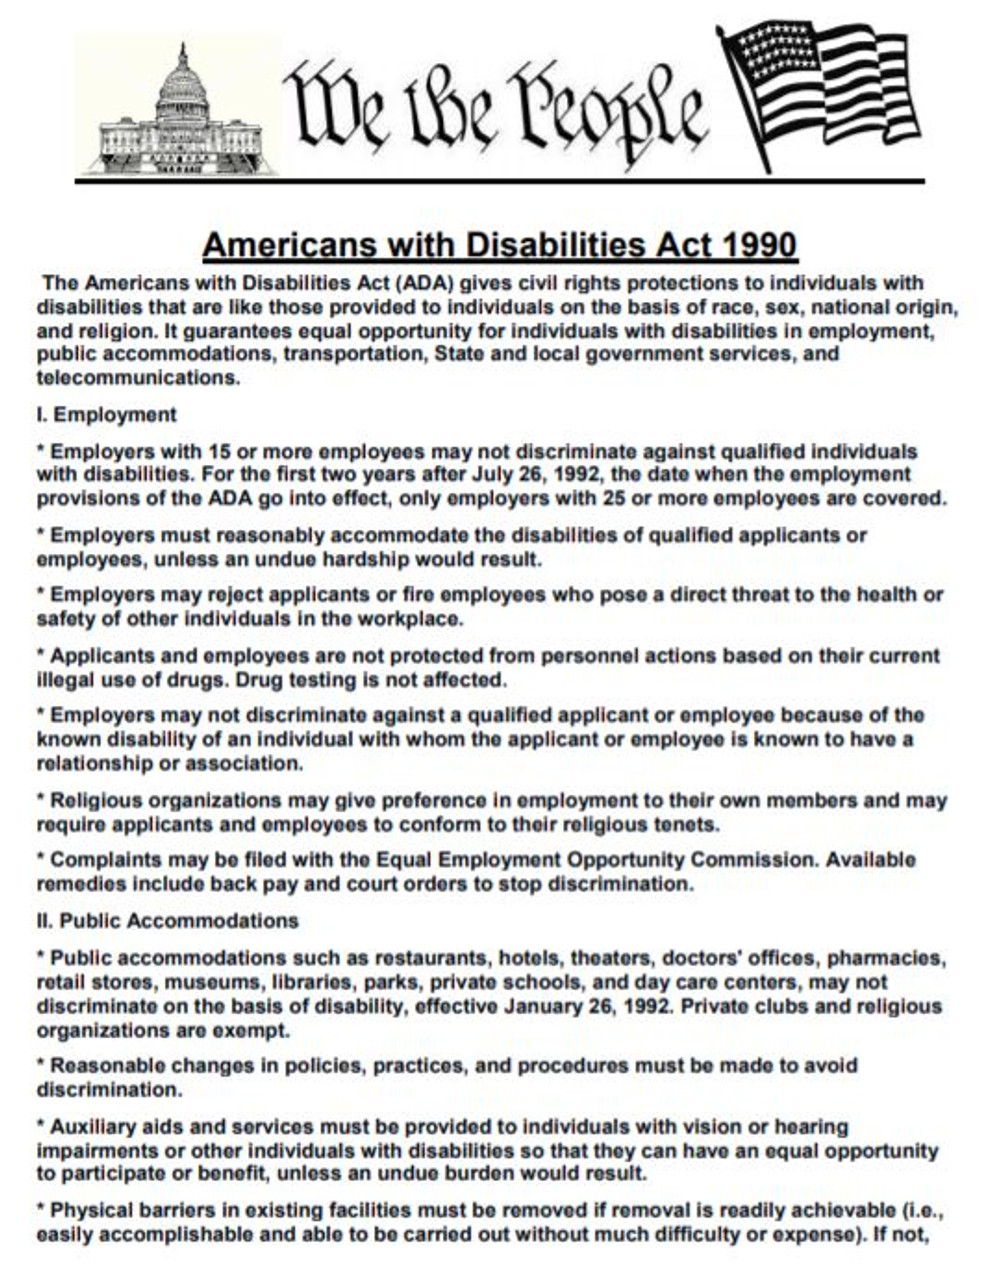 Americans with Disabilities Act Article and Writing Assignment